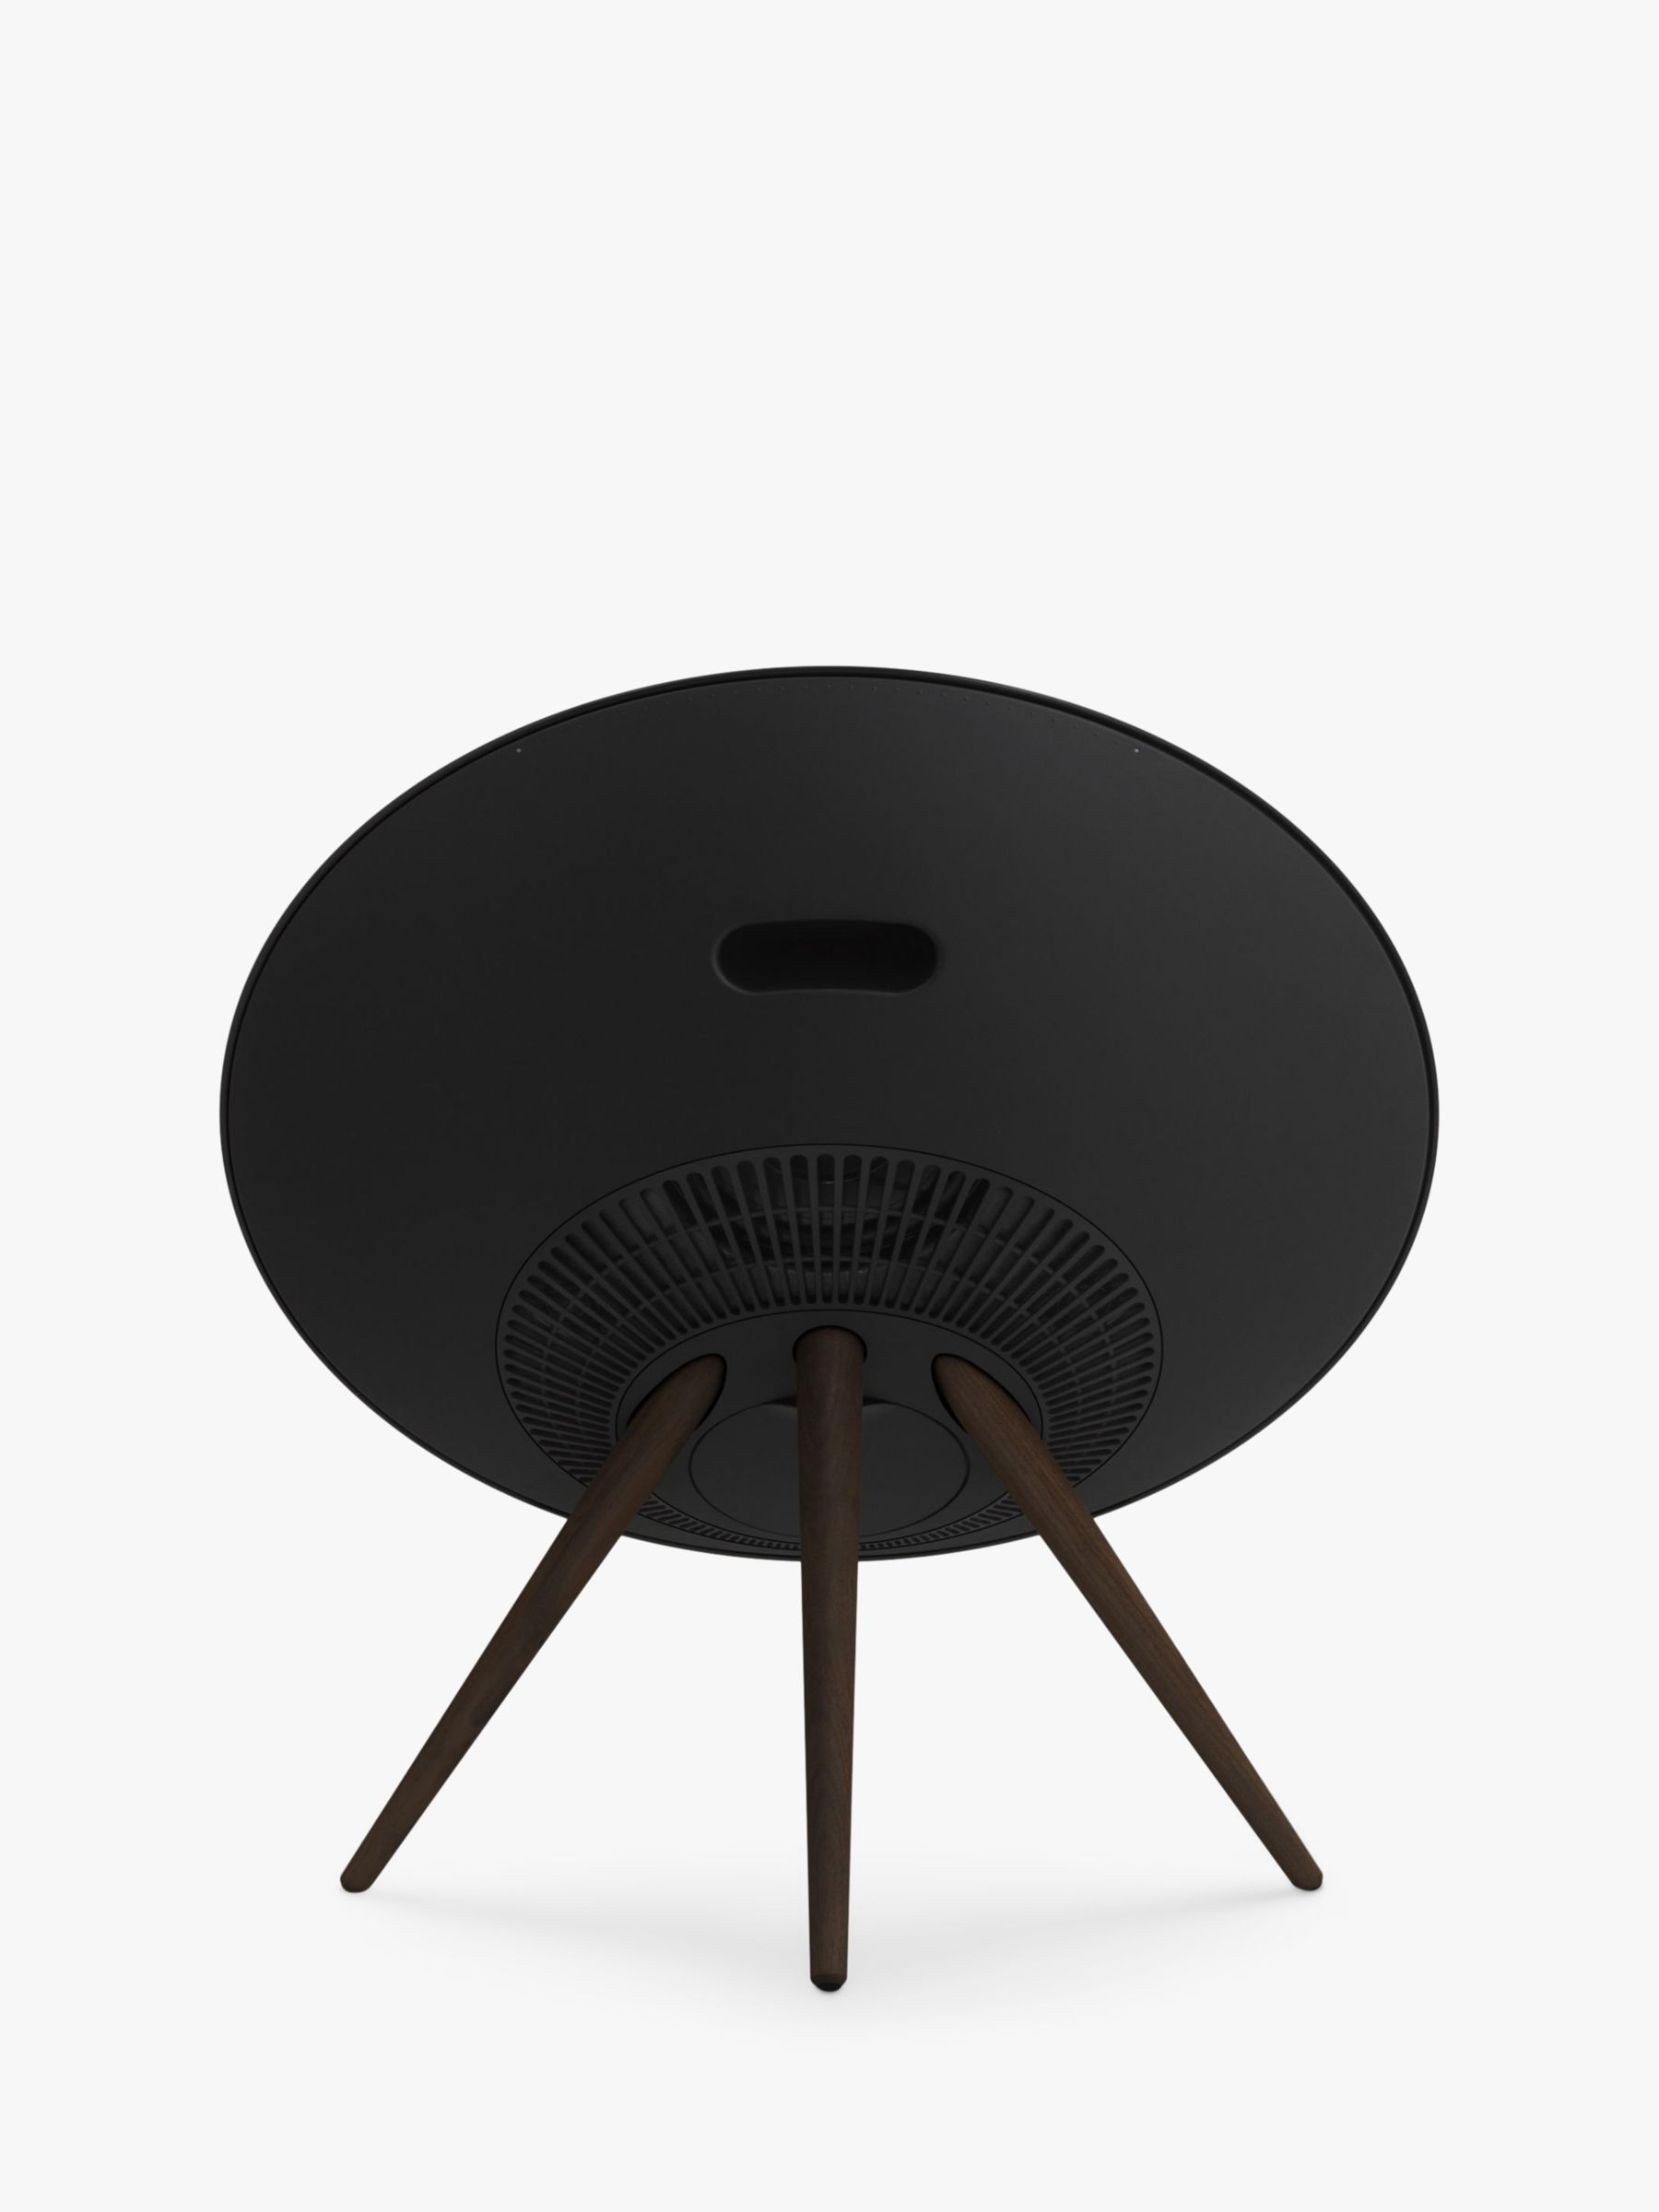 Bang & Olufsen Beoplay A9 (4th Generation) Wi-Fi Bluetooth Music System with Airplay 2, Chromecast Built-In & the Google Assistant #musicsystem